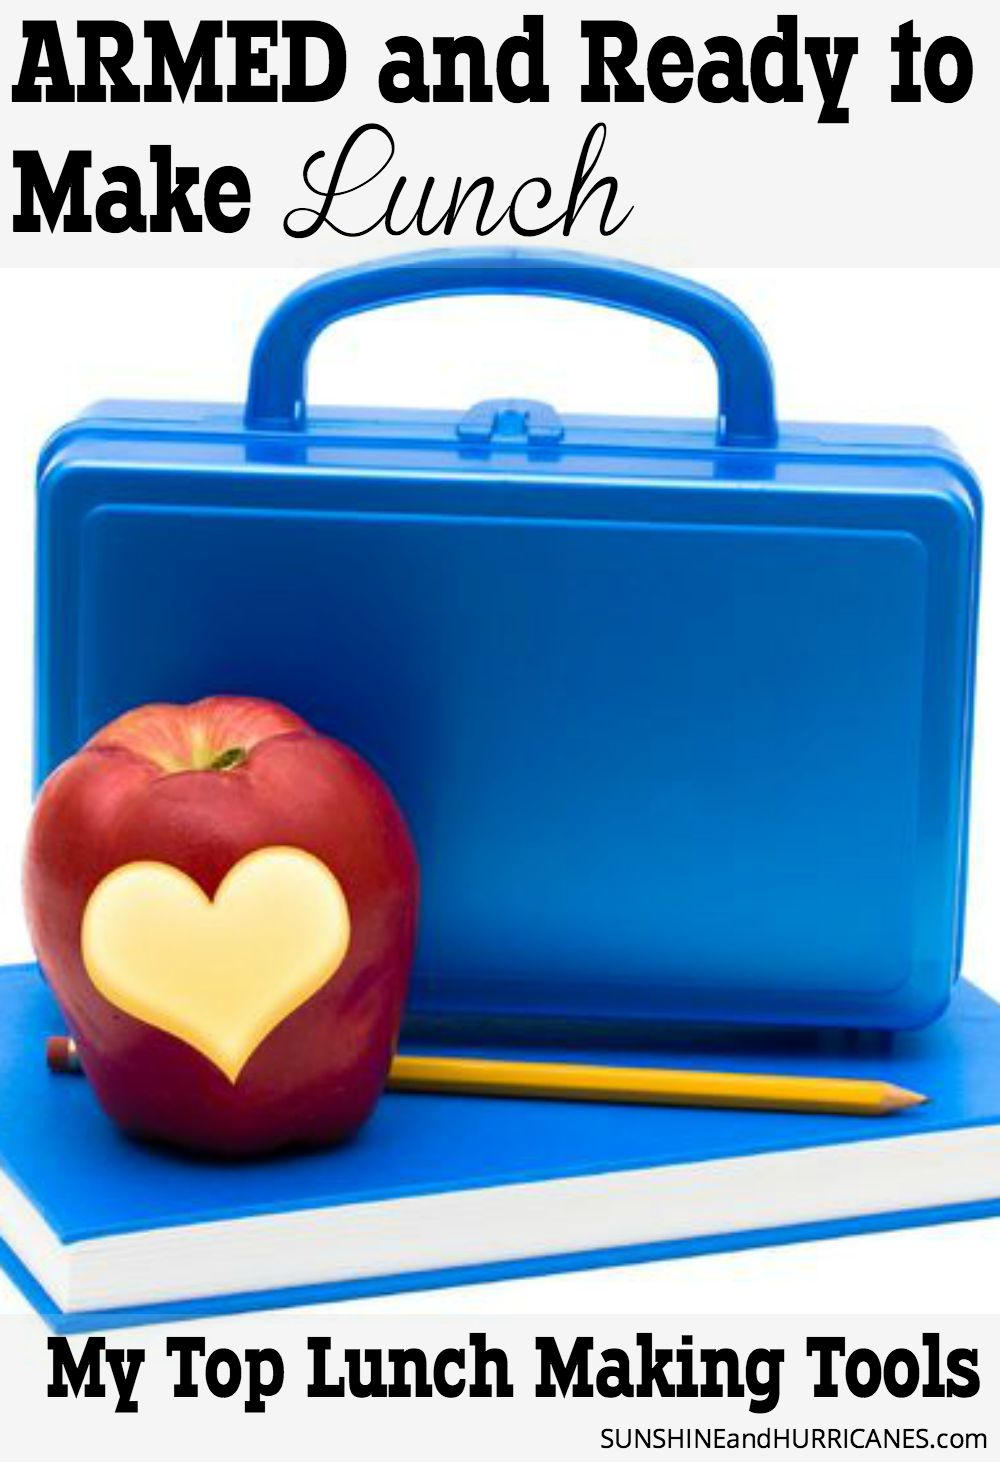 Looking for an easier way to get school lunches made? Here you will find all the tools I use for creating healthy, but quick and easy school lunches that my kids actually like and without creating a ton of waste with disposable bags. You can actually save money and time with reusable containers and a few other school lunch tools that will take the stress out of making lunch. Armed and Ready to Make School Lunches. SunshineandHurricanes.com